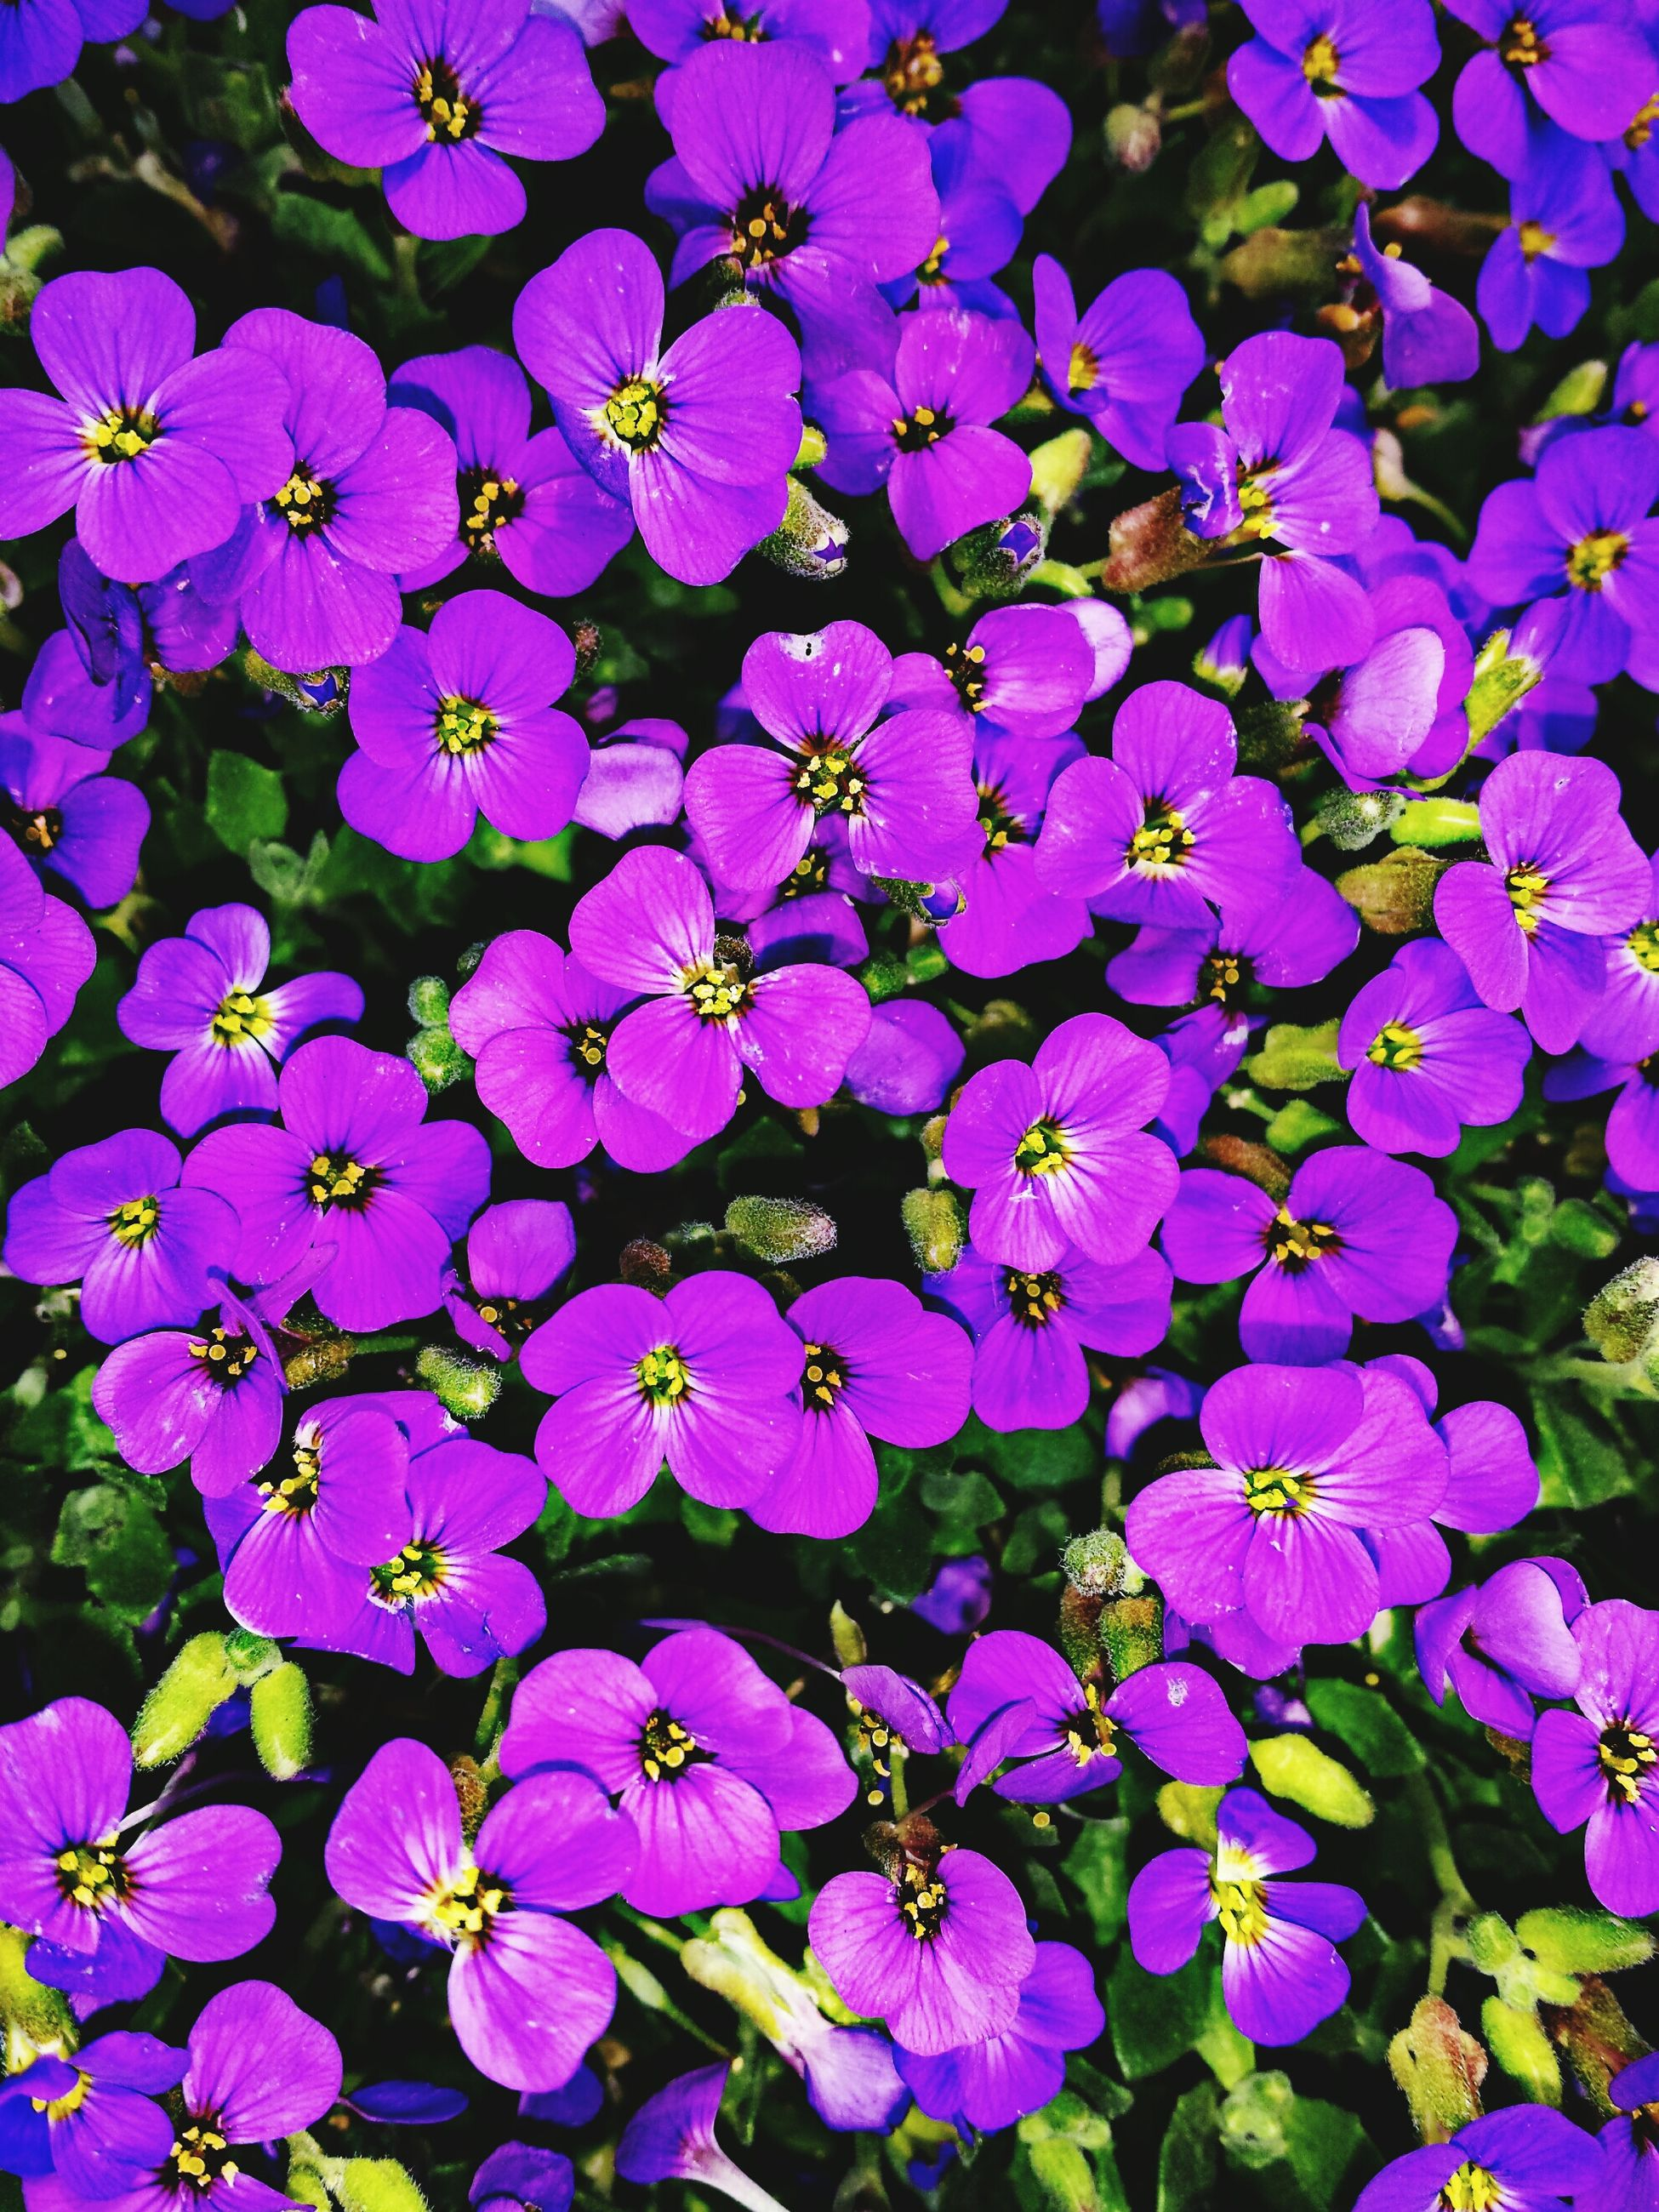 flower, purple, freshness, fragility, petal, growth, beauty in nature, blooming, flower head, plant, full frame, nature, backgrounds, close-up, high angle view, park - man made space, in bloom, blue, outdoors, no people